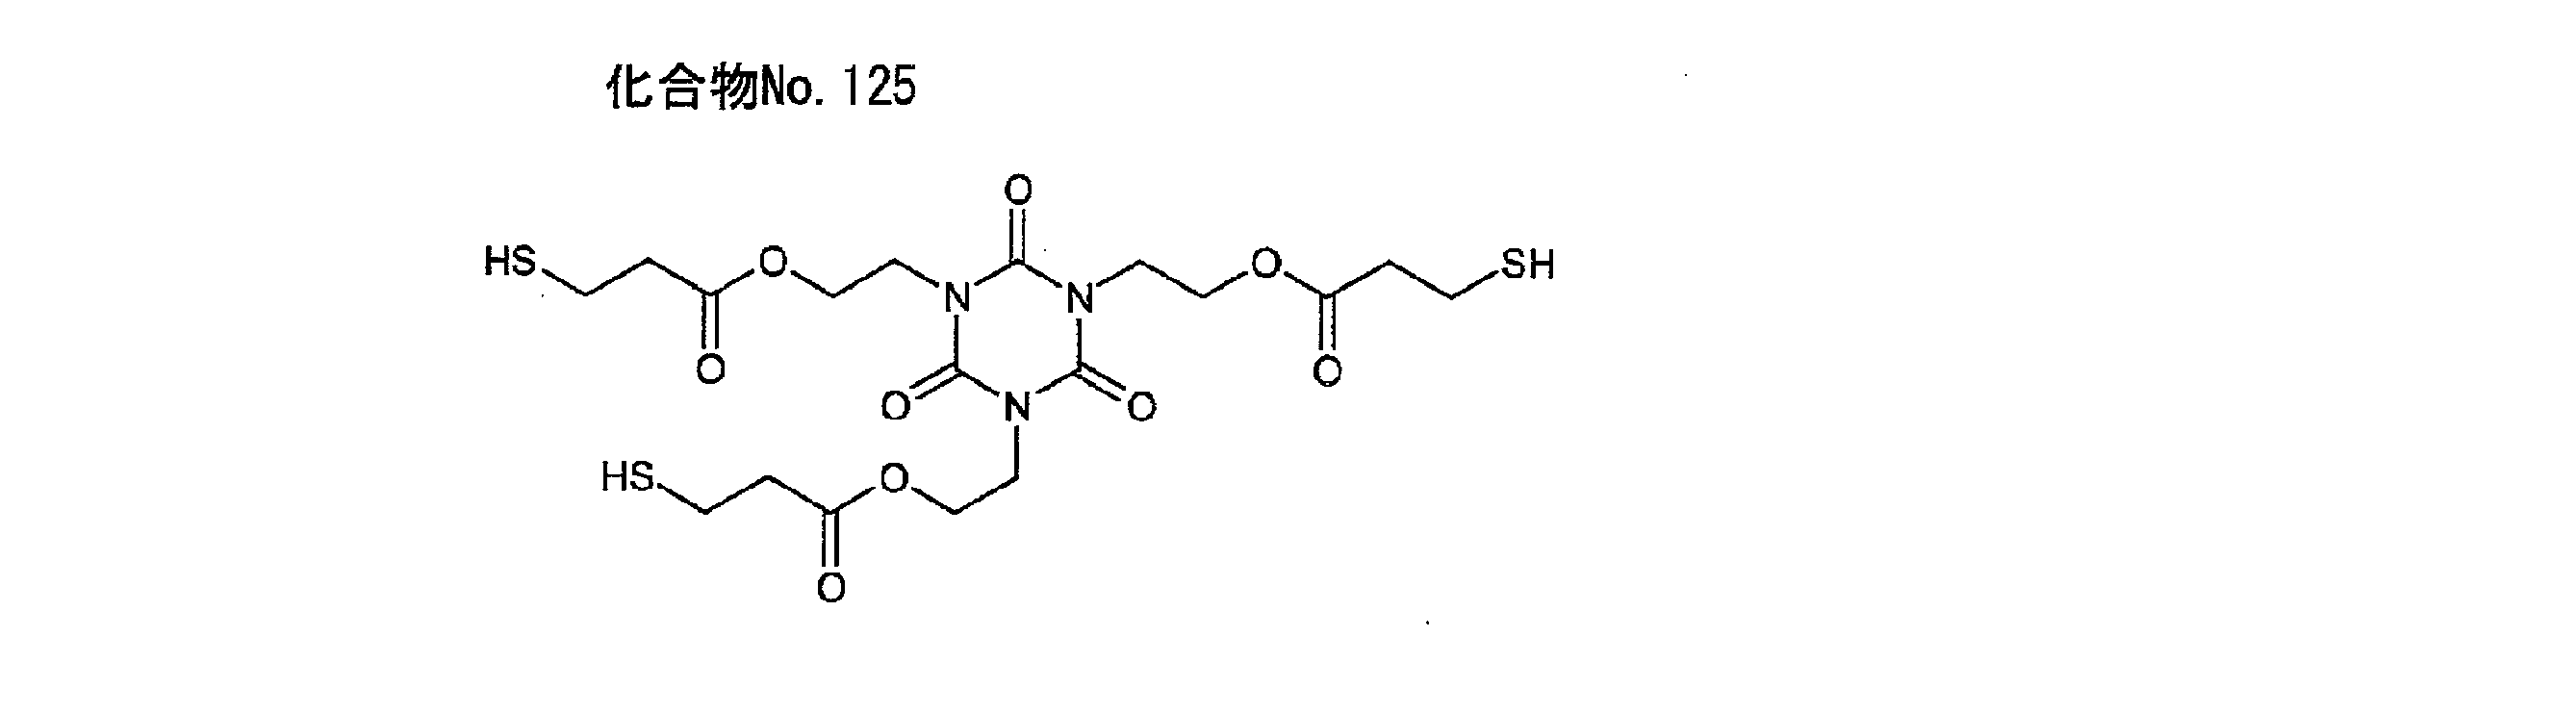 WO2012144421A1 - NOVEL COMPOUND HAVING α-CYANOACRYLATE STRUCTURE, DYE, AND COLORING PHOTOSENSITIVE COMPOSITION         - Google PatentsFamily